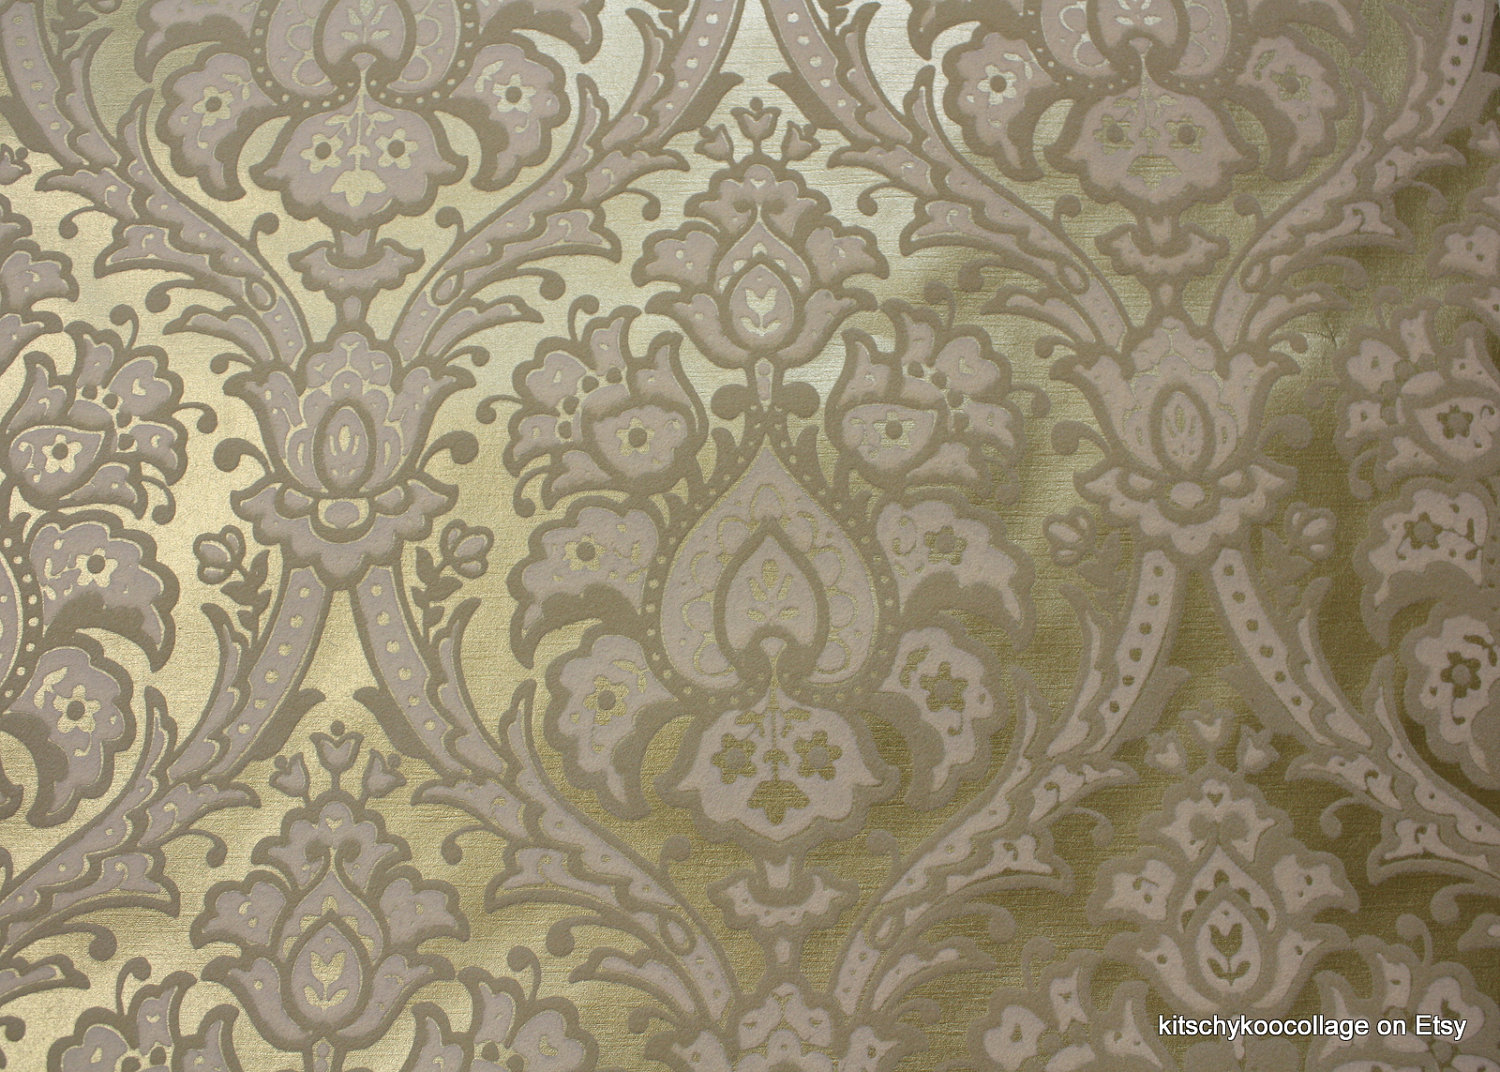 s-Vintage-Flocked-Metallic-Gold-and-white-flocked-Damask-wallpaper-wp4002316